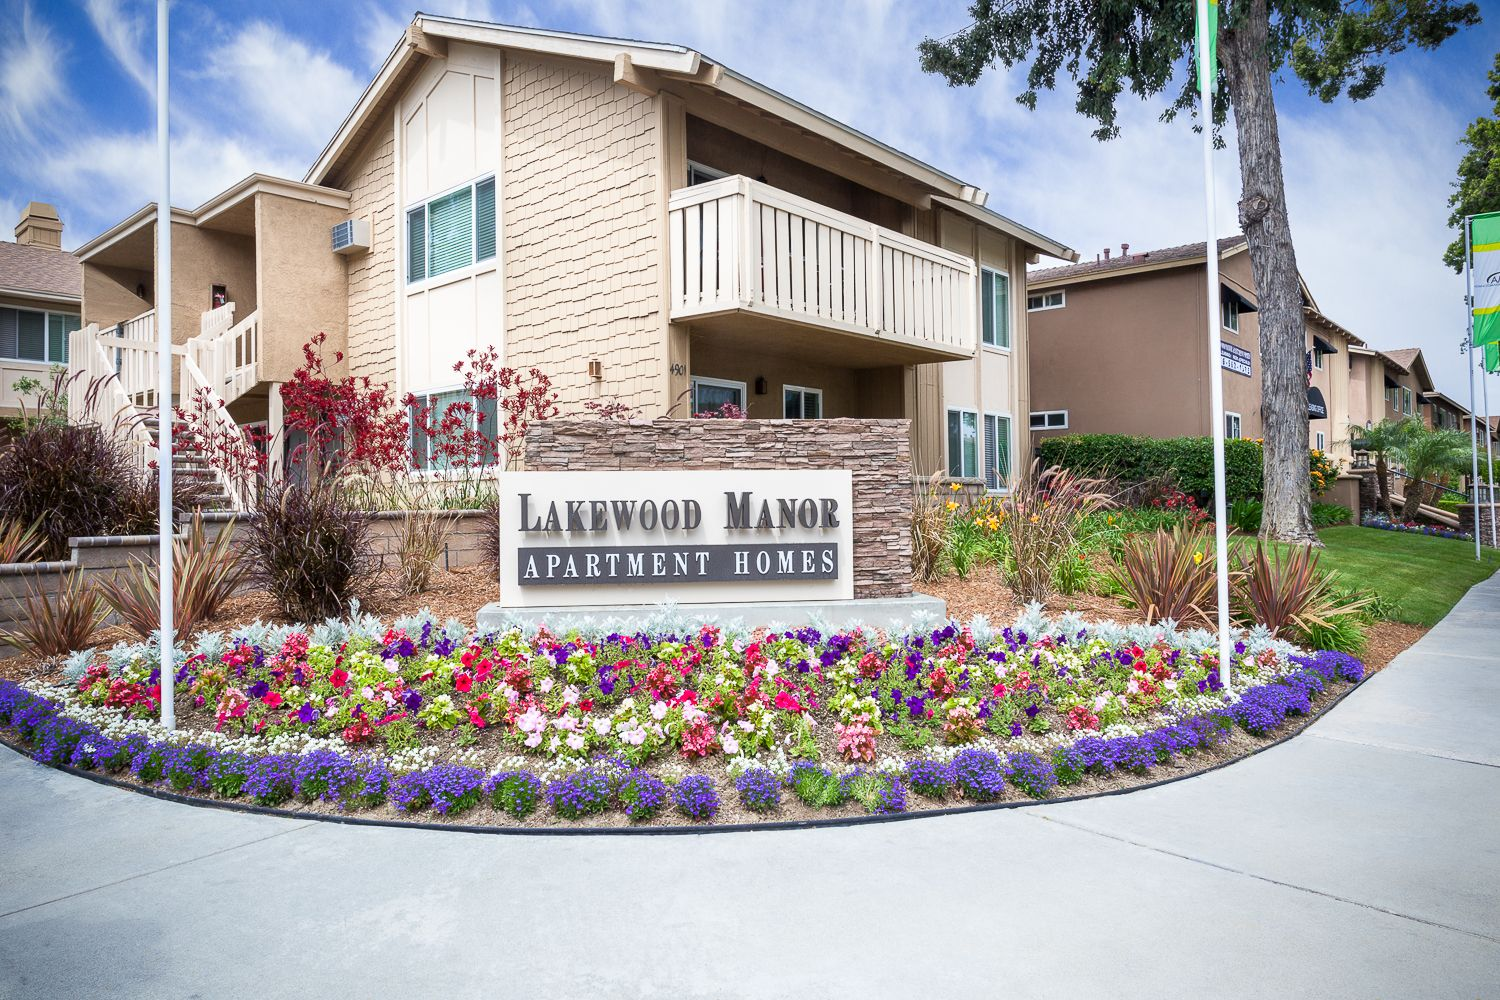 Apartments In Lakewood Lakewood Manor Apartments 866 256 2737 Dog Friendly Apartments Manor Apartments Apartments For Rent